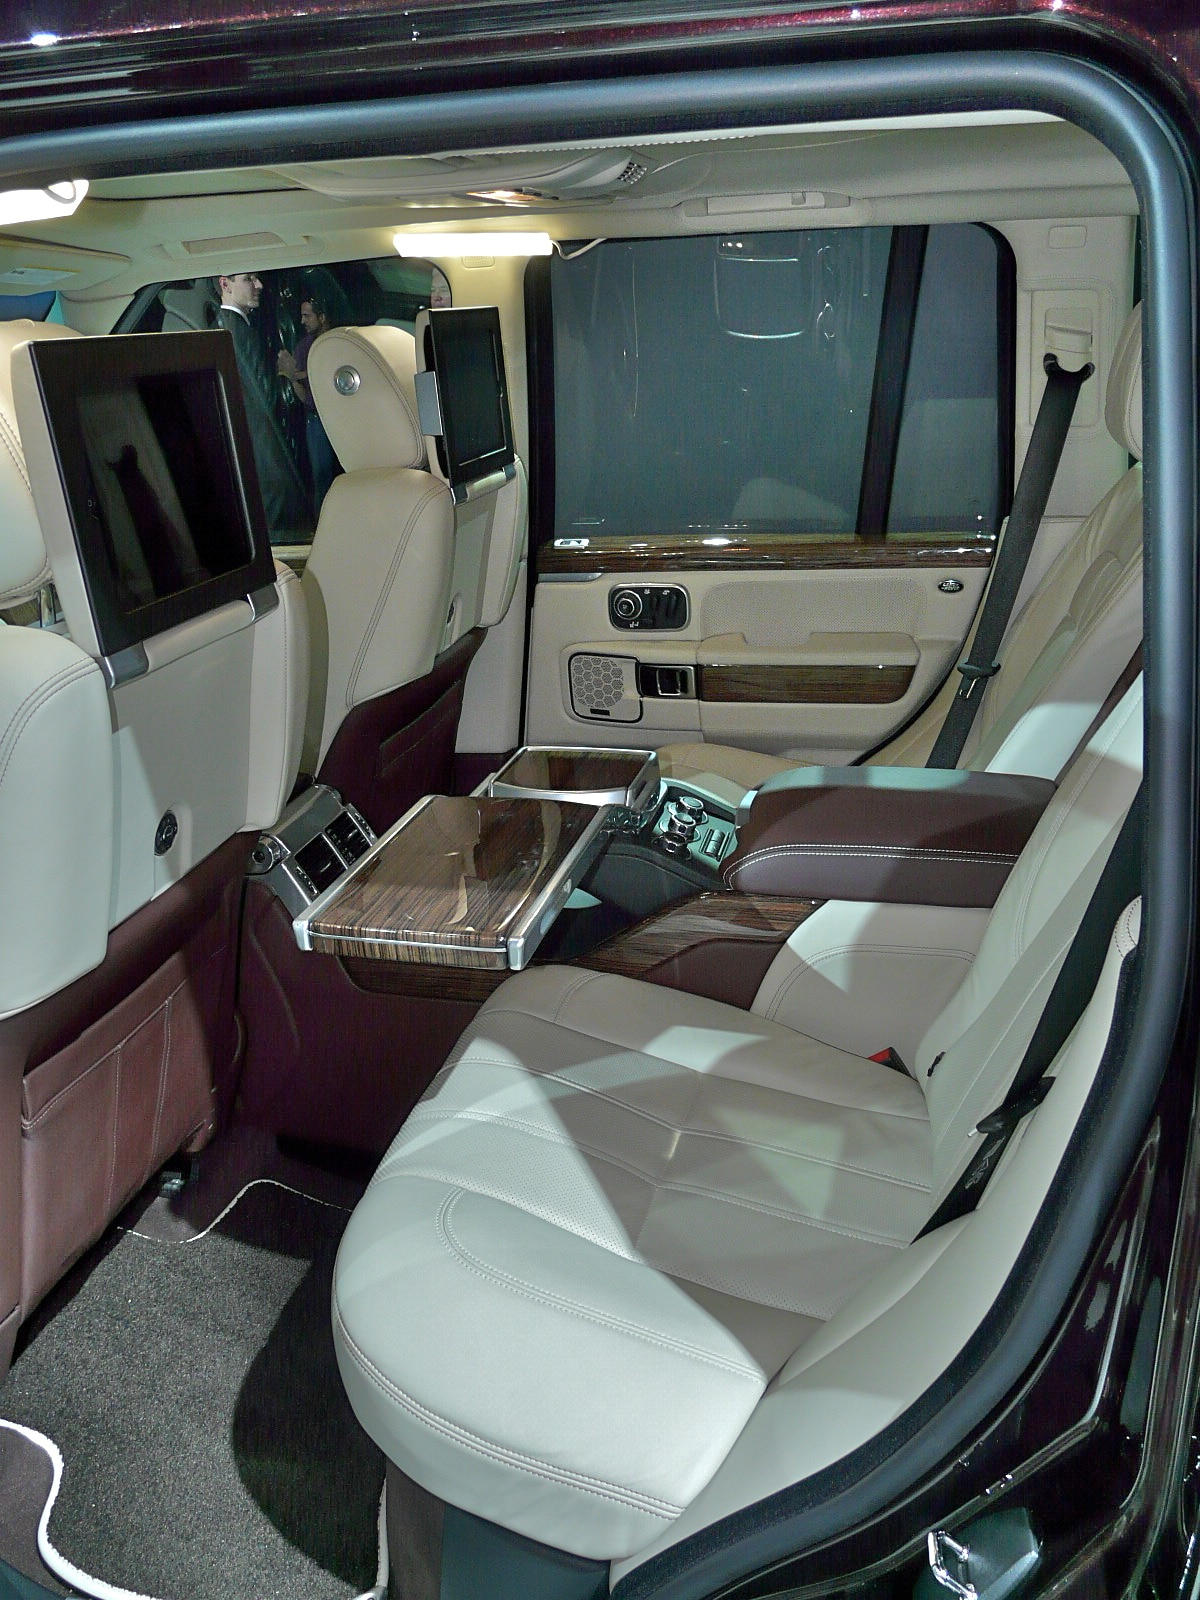 2012 Range Rover Autobiography Ultimate - 2011 New York ...